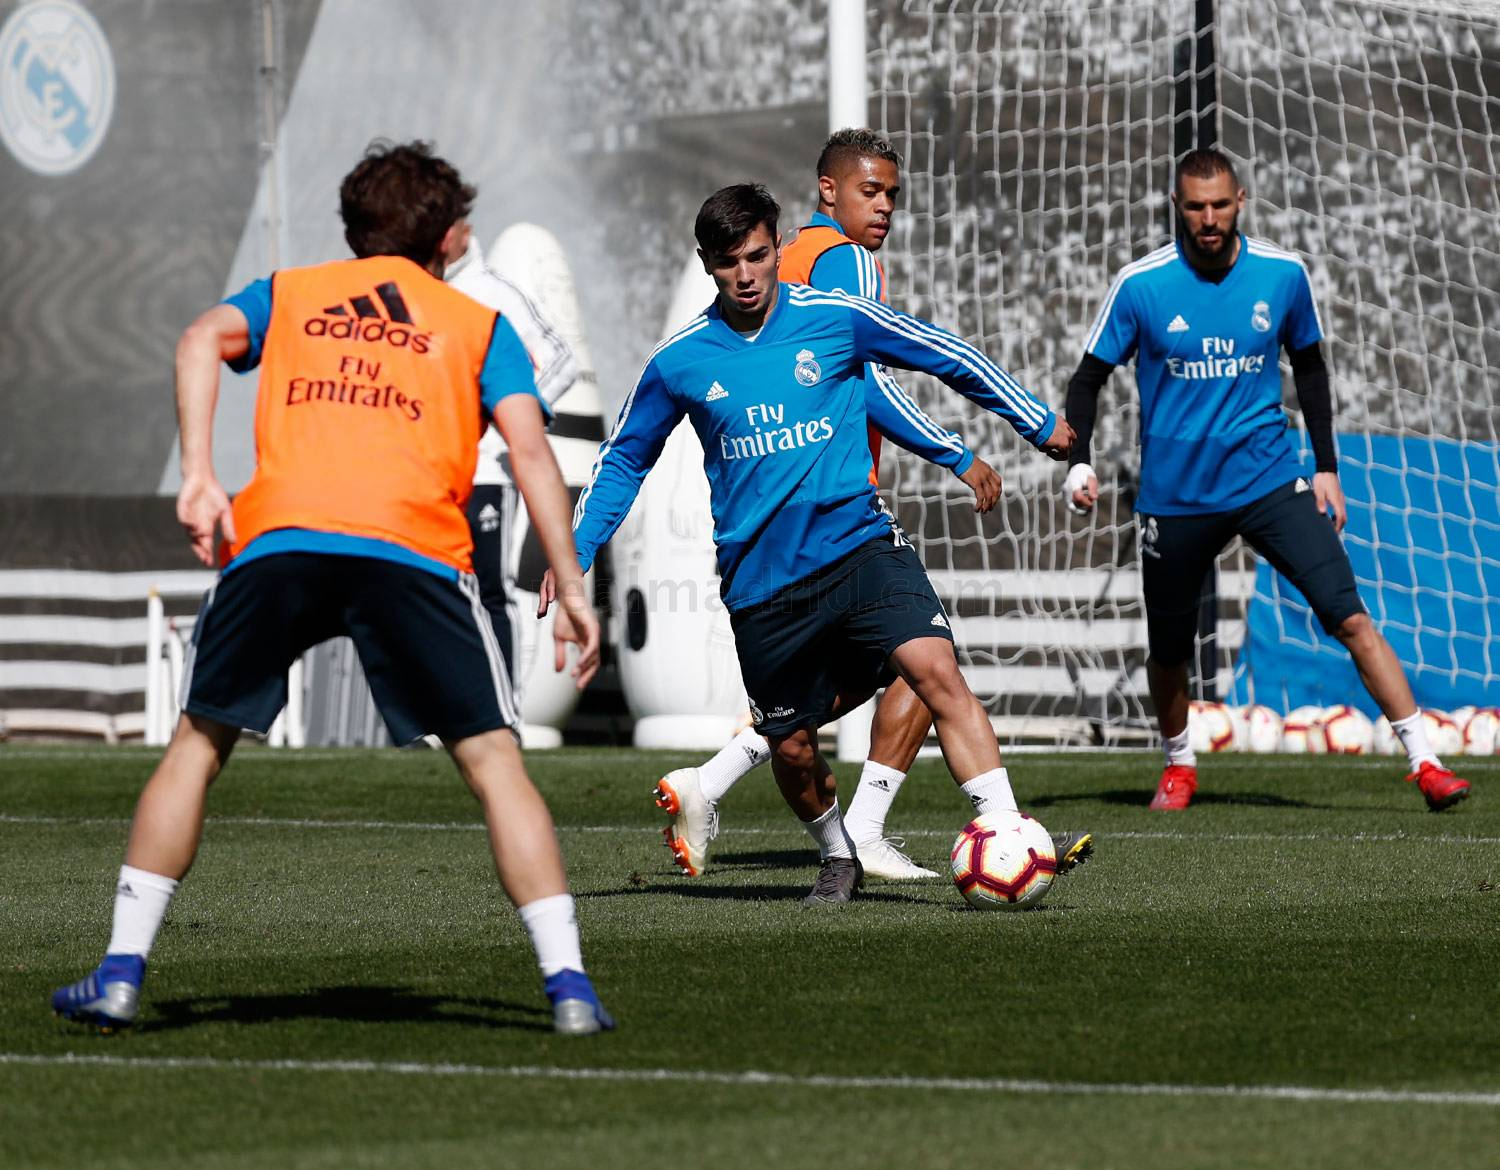 Real Madrid - Entrenamiento del Real Madrid - 22-03-2019